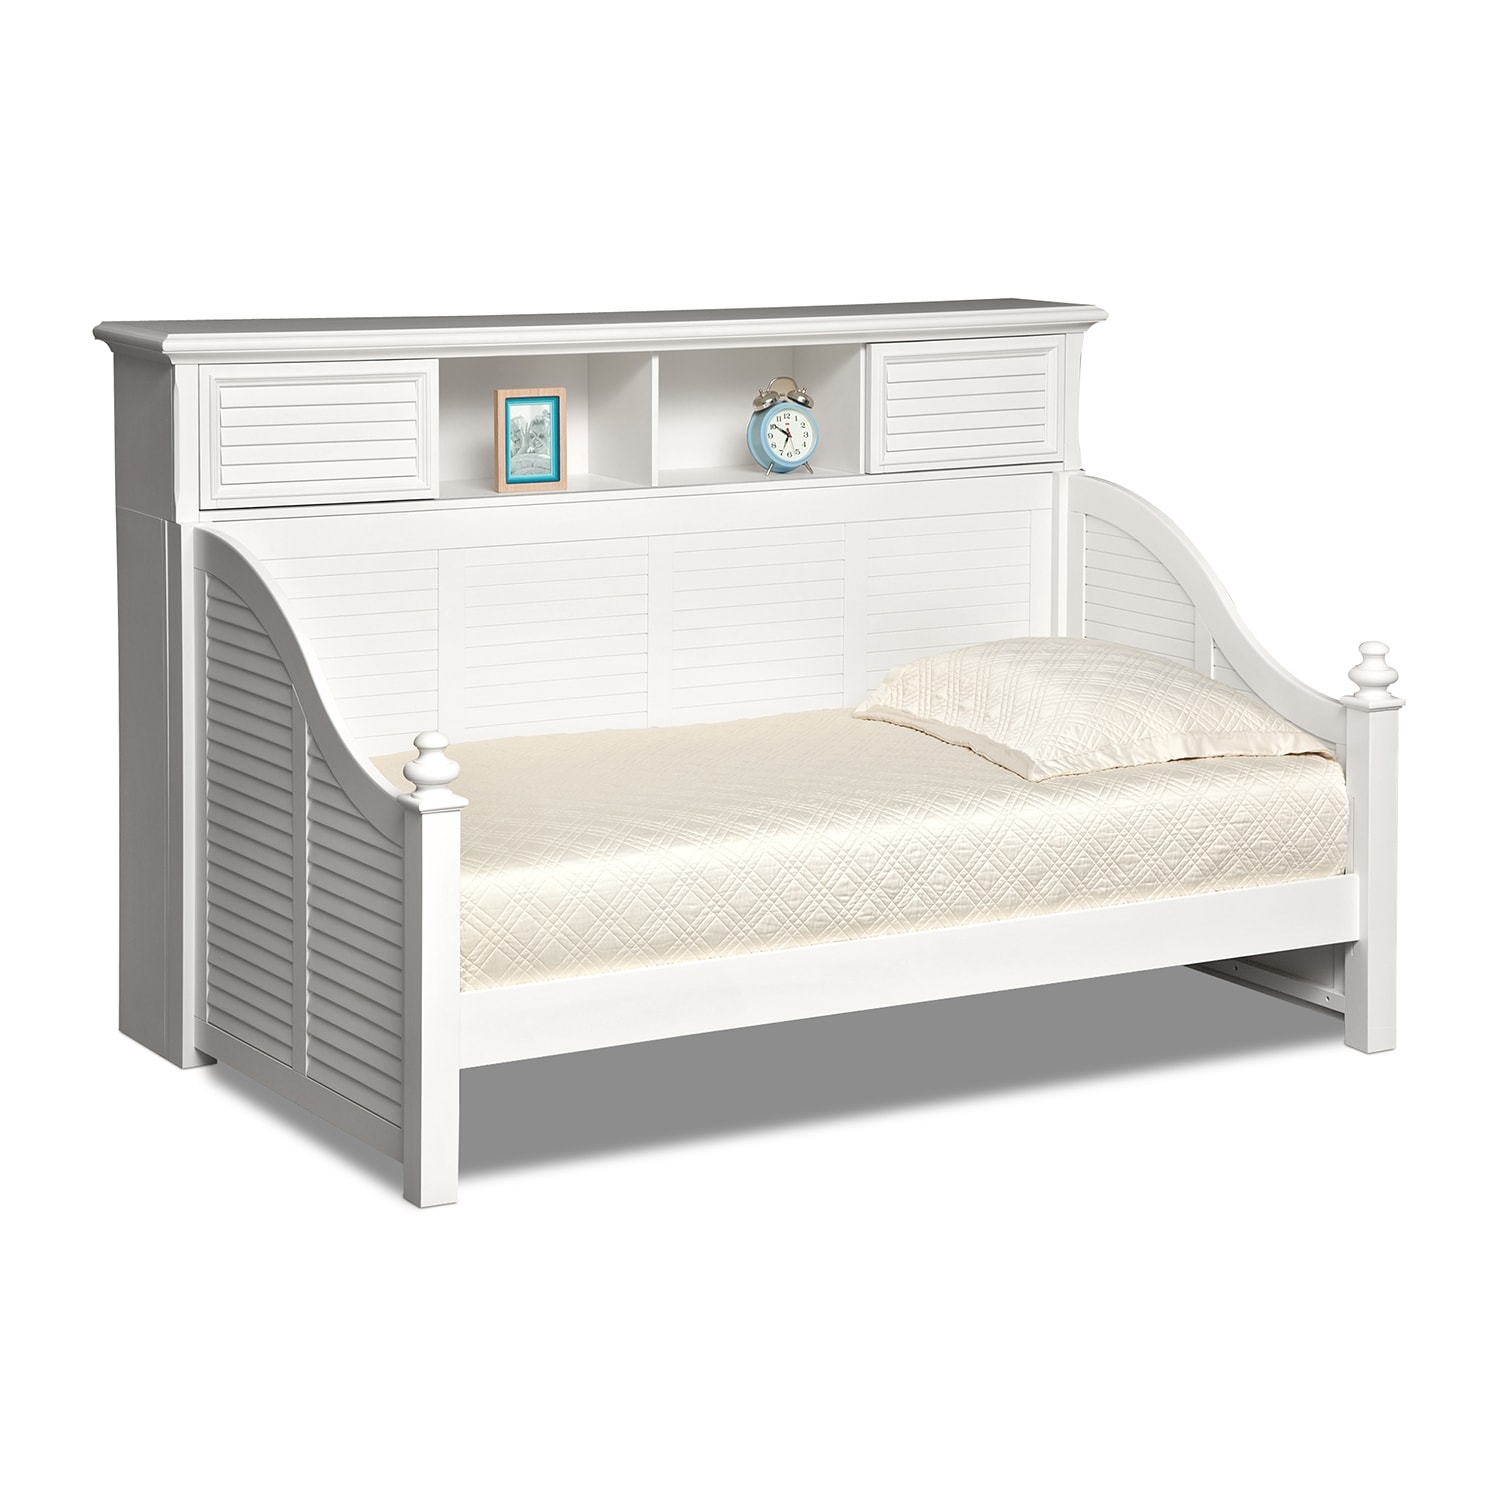 Kids Furniture - Seaside Twin Bookcase Daybed - White